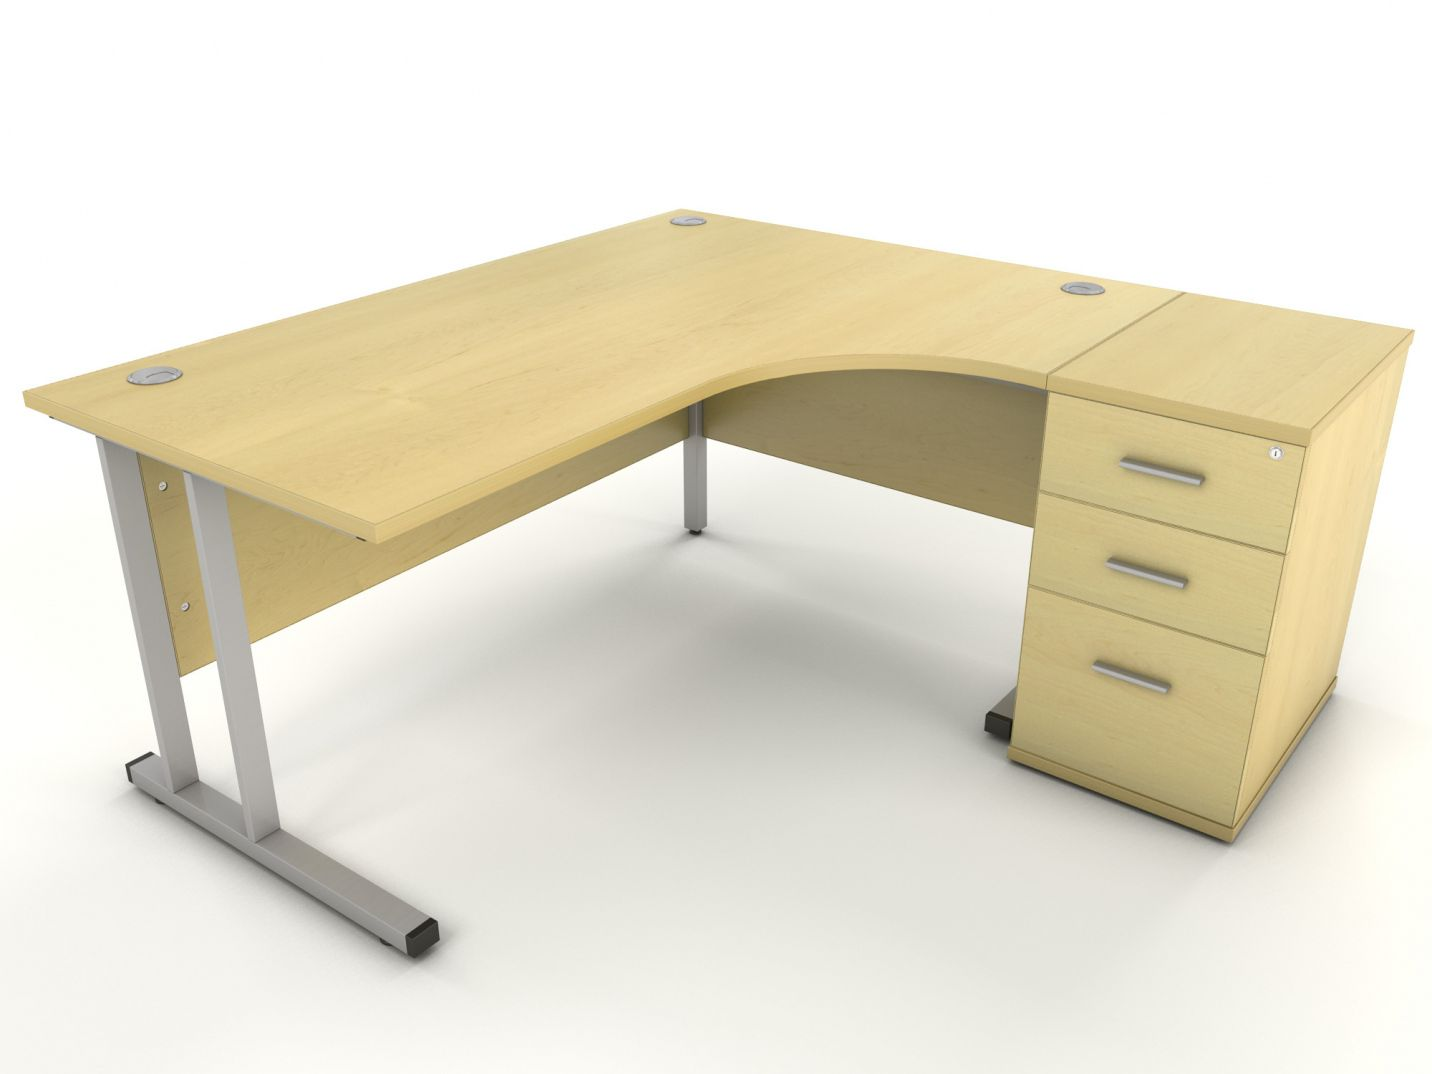 Attrayant Office Corner Desk   Contemporary Home Office Furniture Check More At  Http://michael Malarkey.com/office Corner Desk/